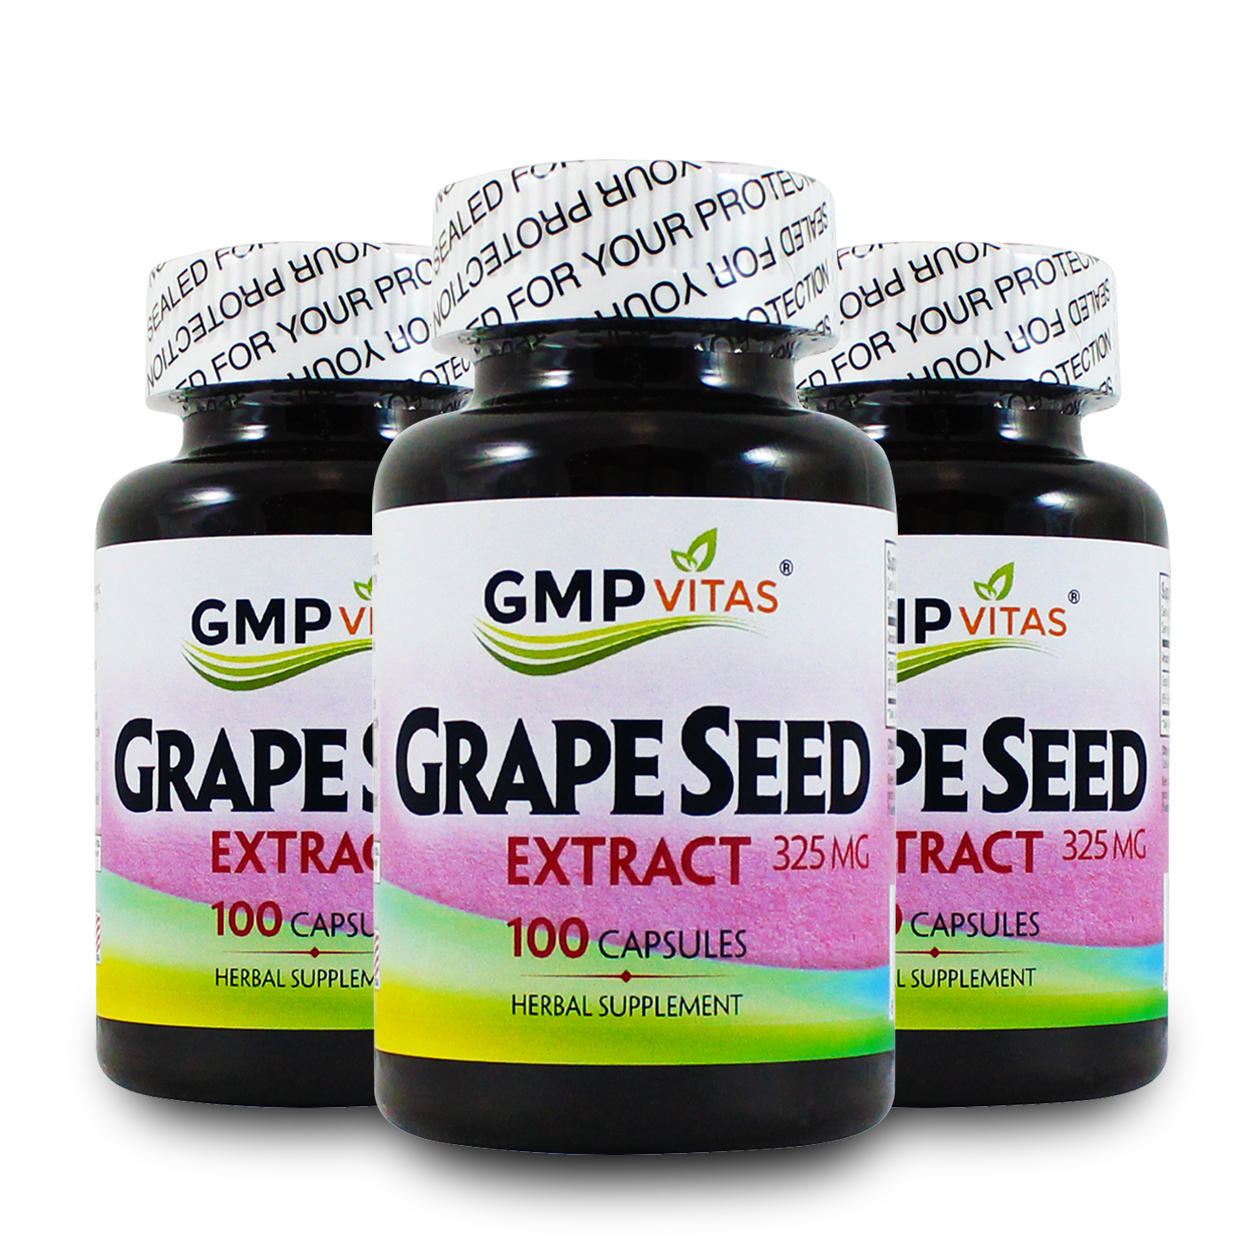 EXTRA25% Off  Health Supplement Products Sale @ GMPVitas